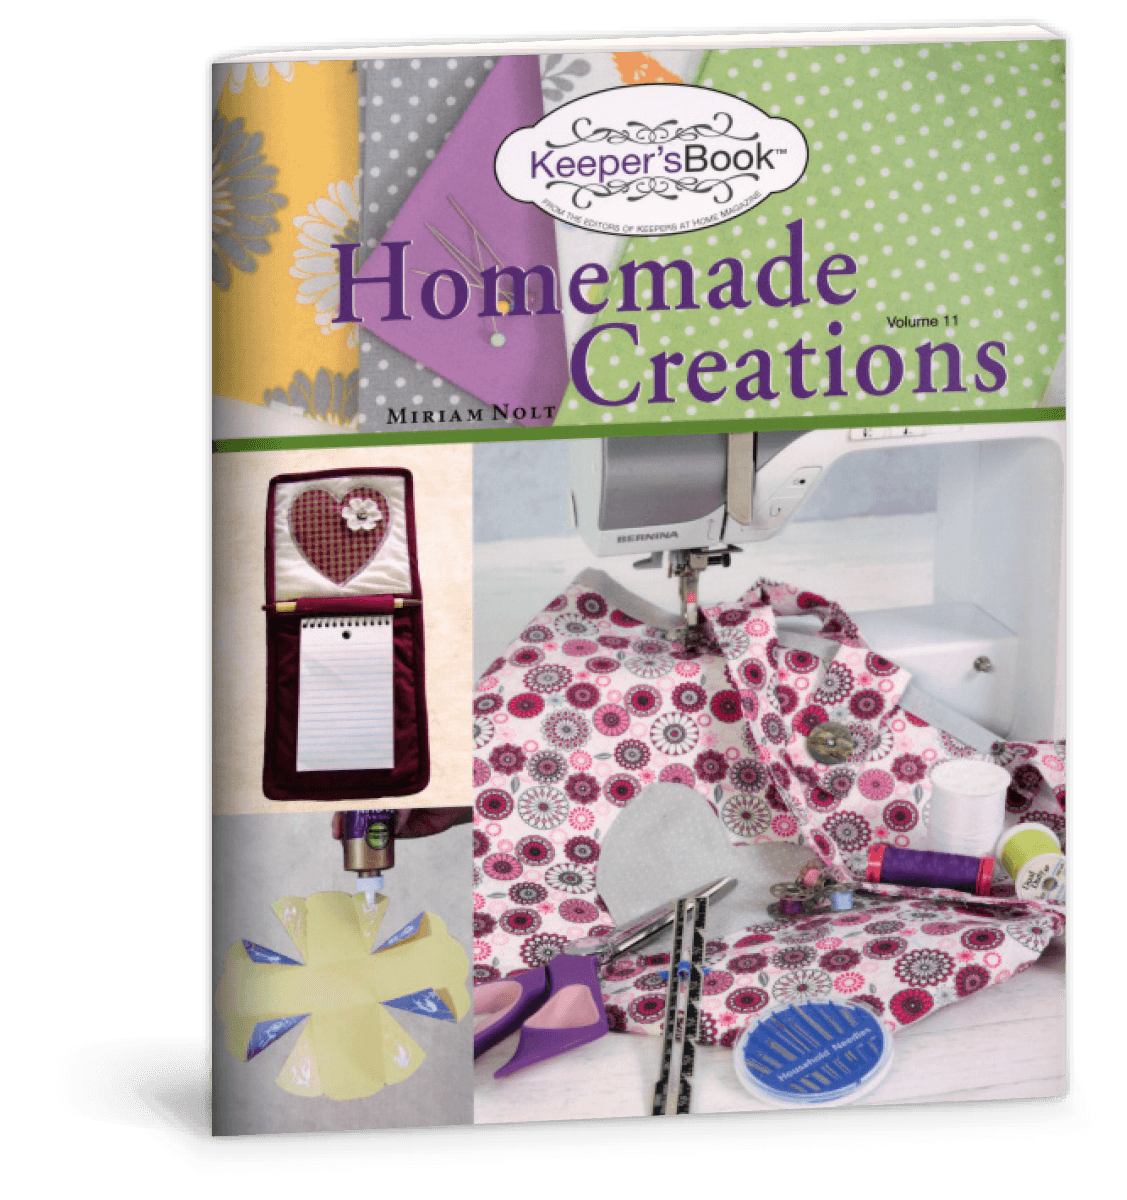 Homemade Creations